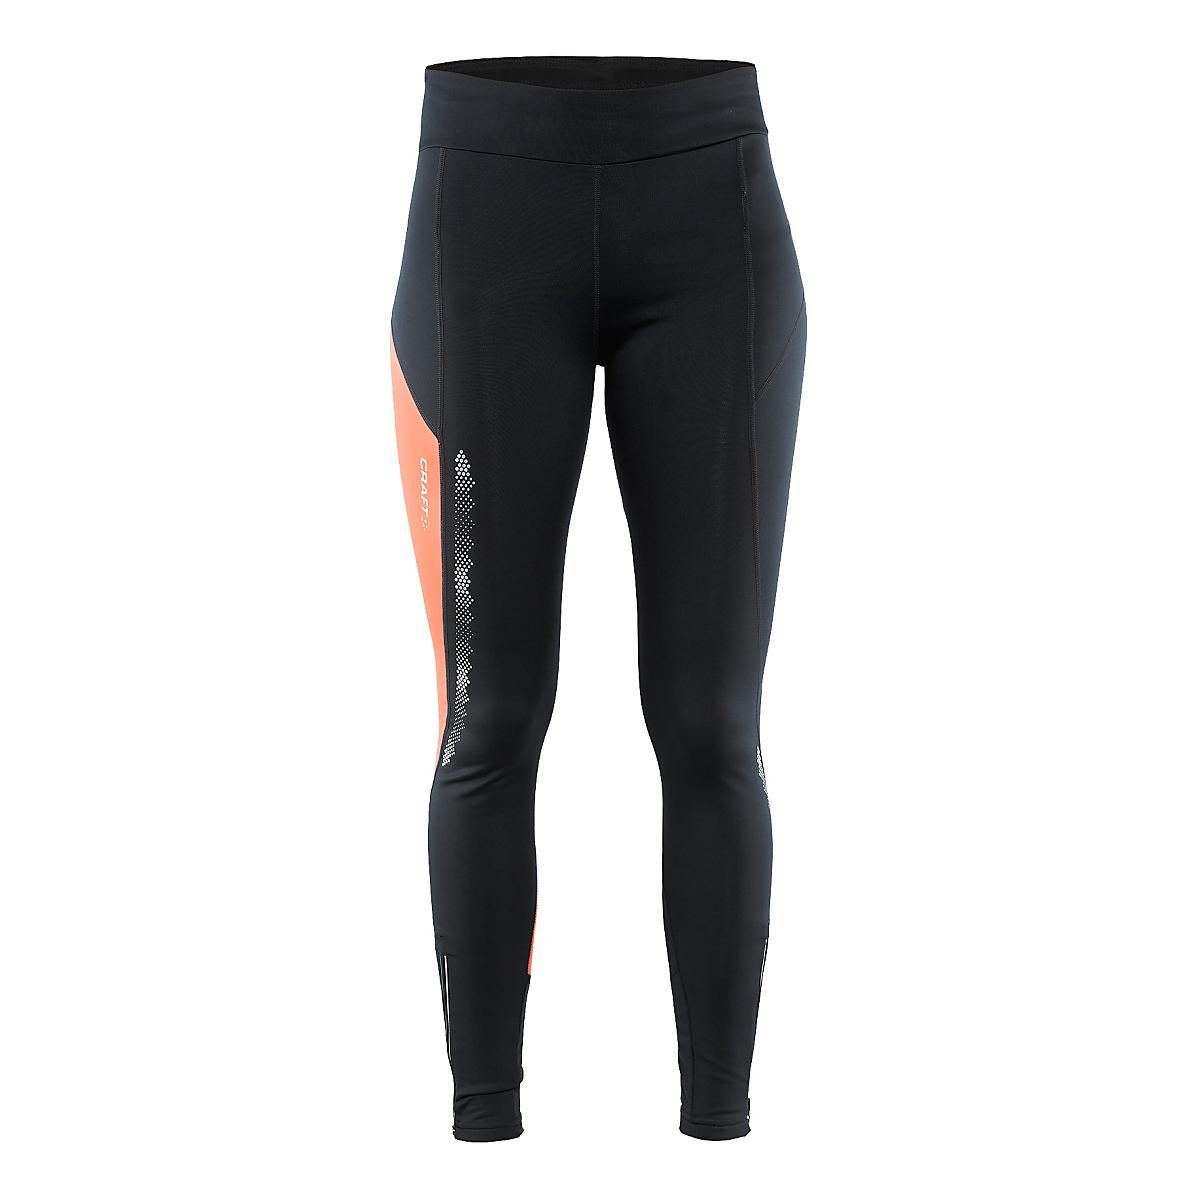 Warm high-visibility thermal tights with ergonomic fit and key/music pocket